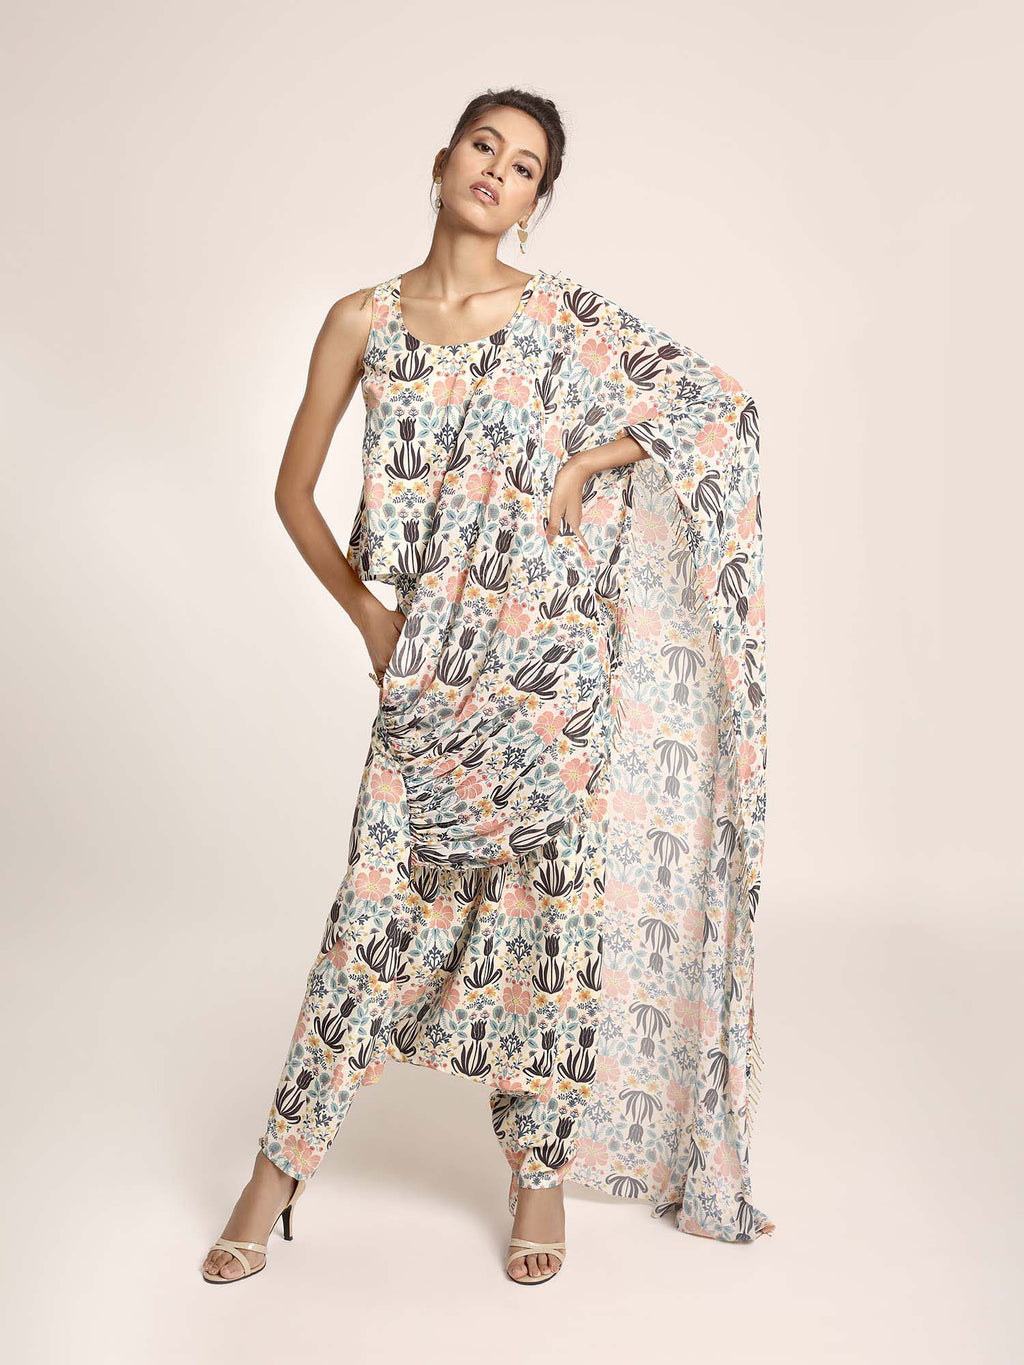 Cream Printed Art Crepe Top and Low Crotch Pant with attached Printed Art Georgette Drape - Riviera Closet